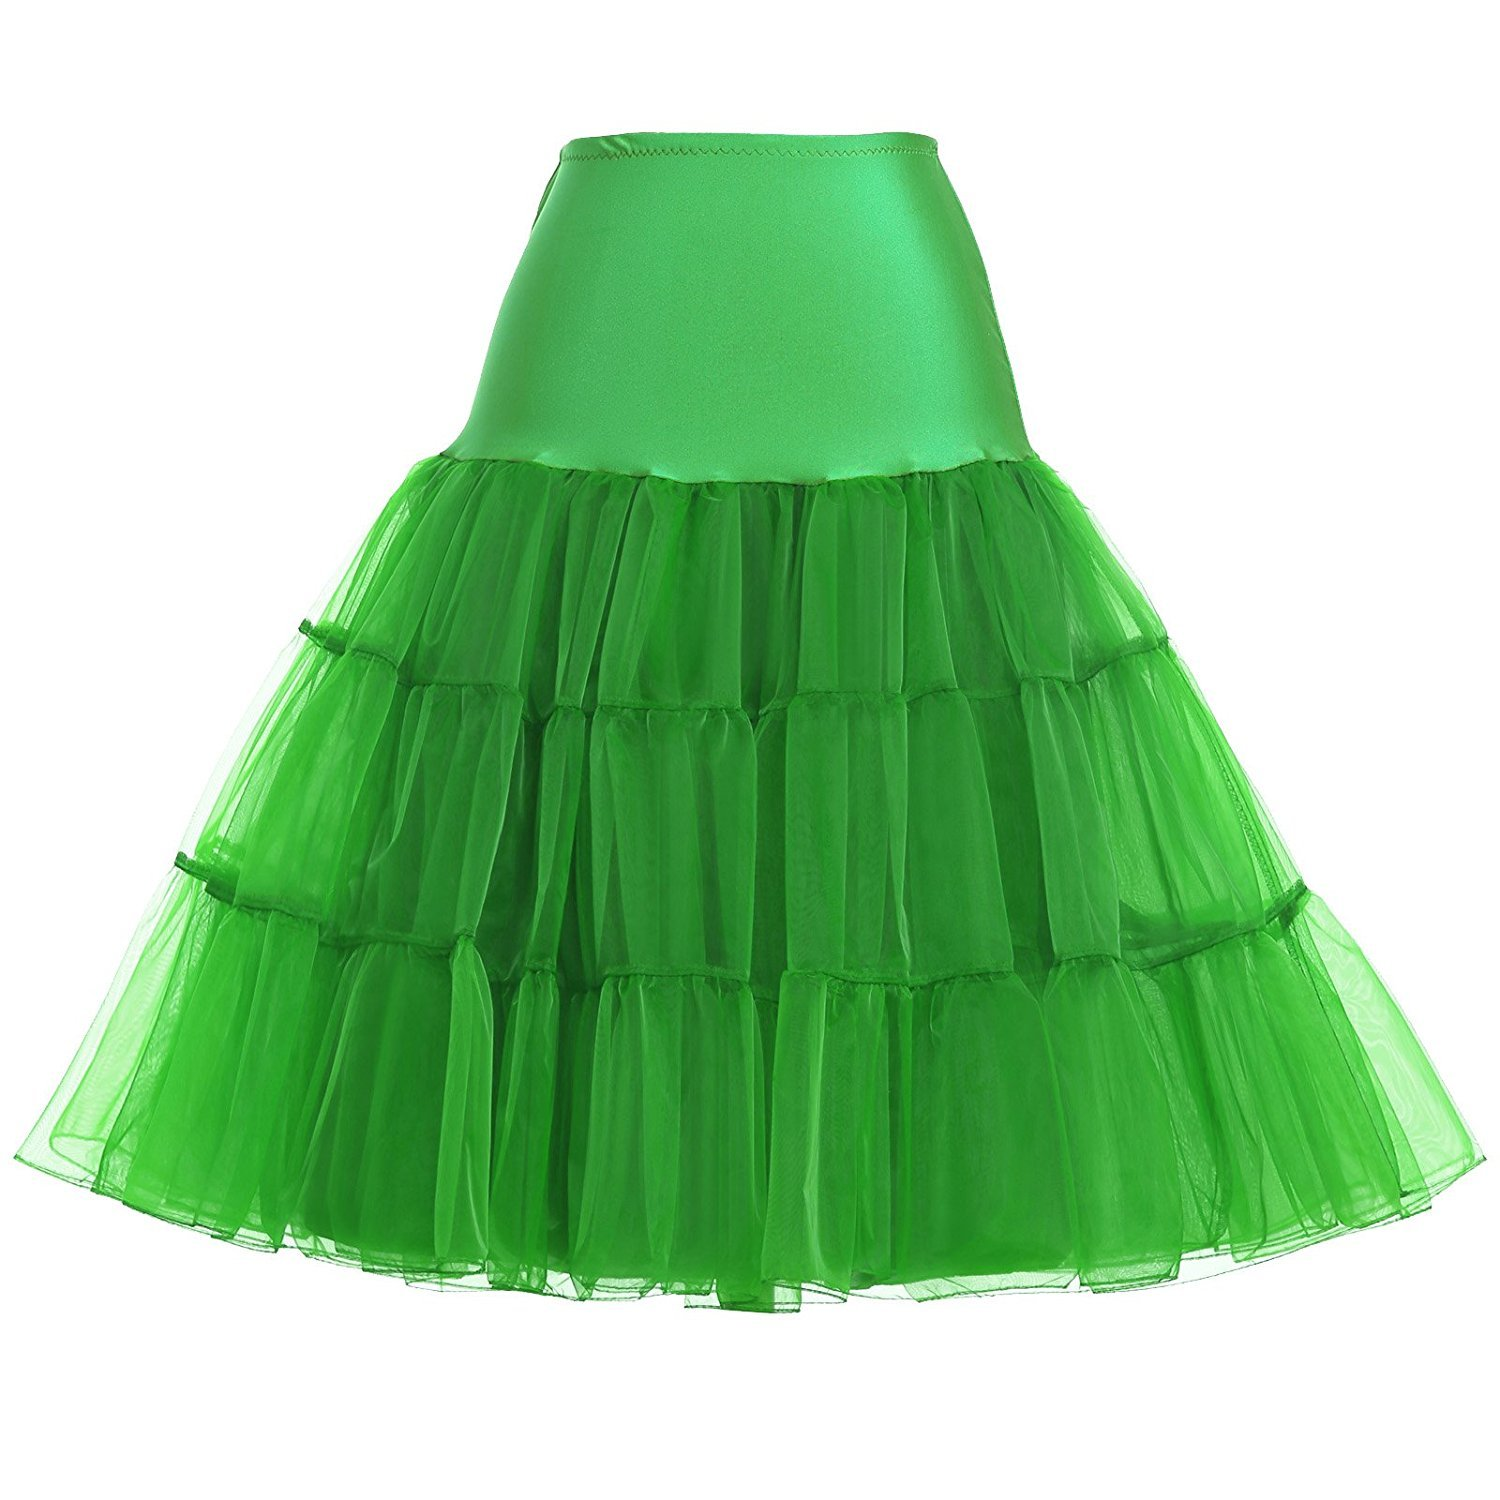 Wishopping Women 1950s Rockabilly Tutu Skirt Crinoline Petticoat P18 Green Size S WP18GN-S